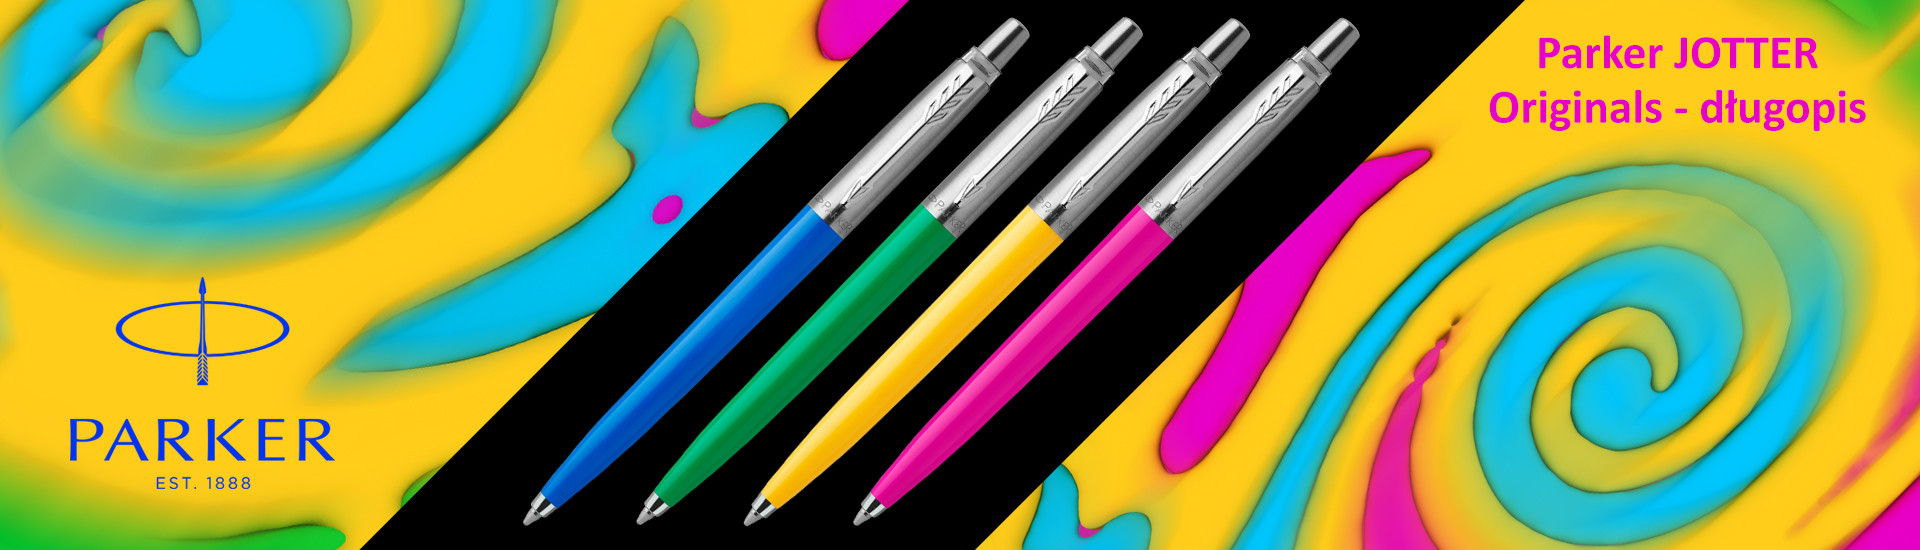 PARKER JOTTER ORIGINALS